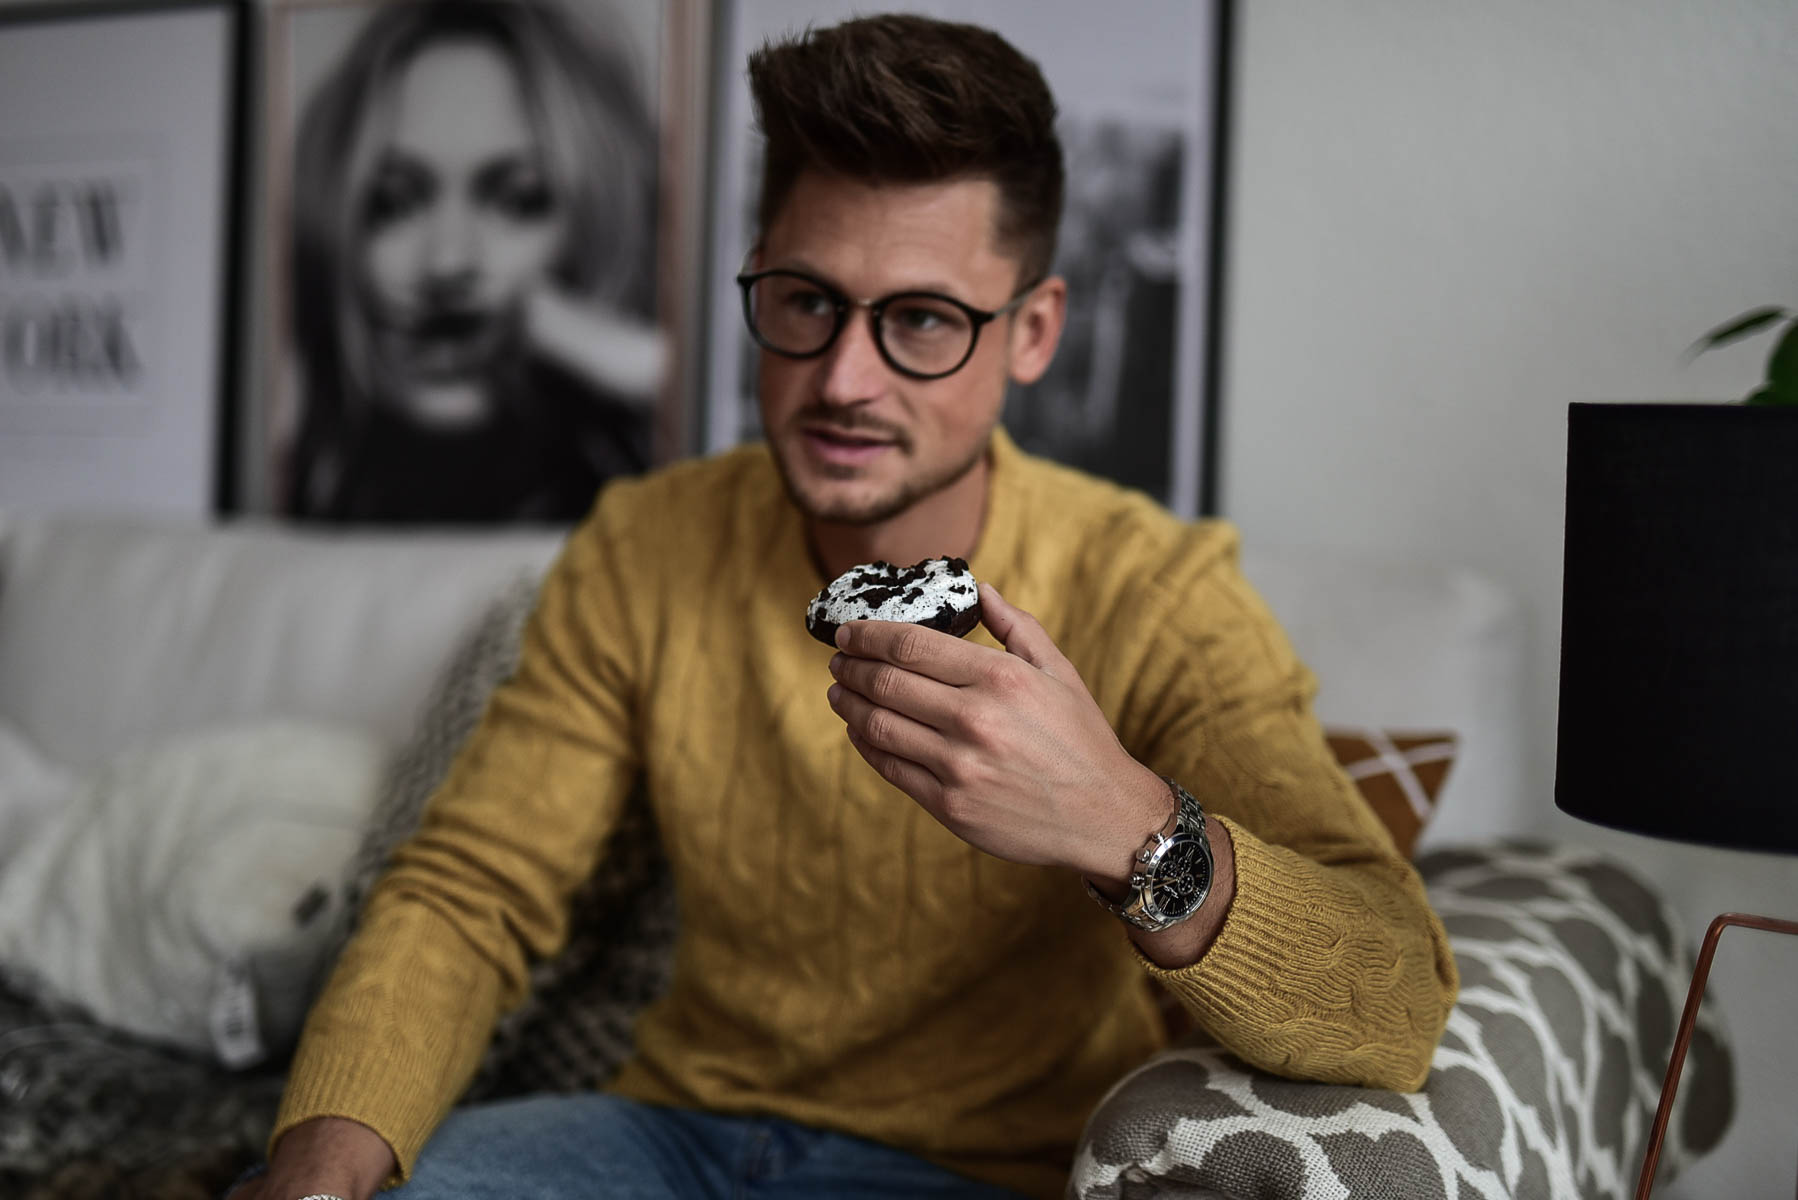 Tommeezjerry-Fashionblog-Lifestyleblog-Styleblog-Männerblog-Männer-Modeblog-Berlin-Berlinblog-Männermodeblog-Outfit-Sweater-Yellow-Ripped-Jeans-Oreo-Donut